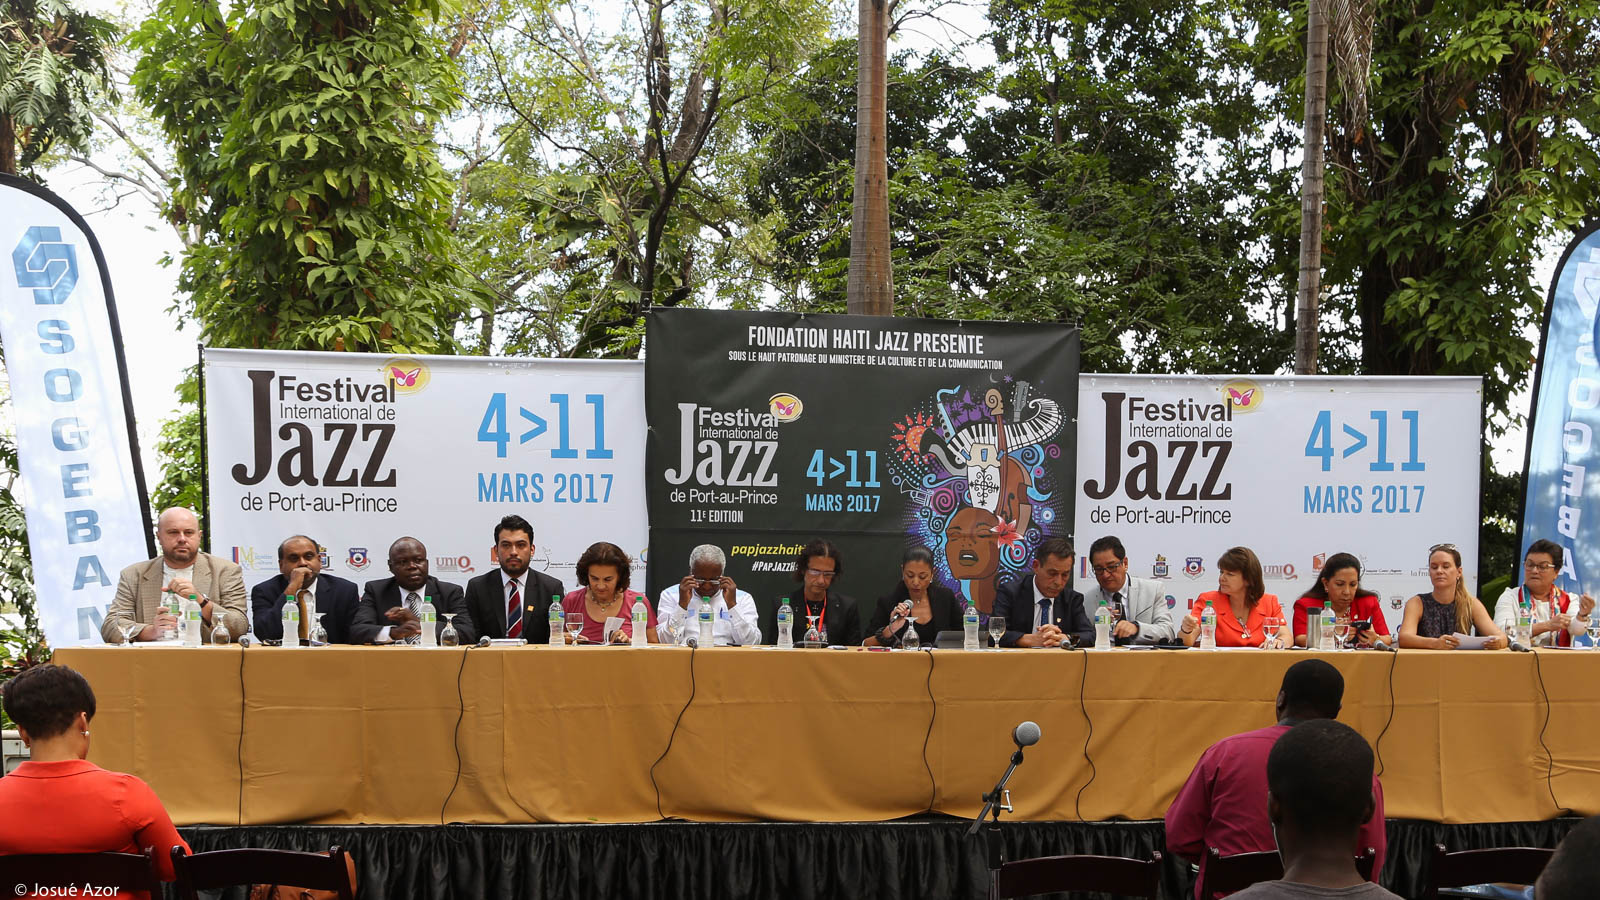 Février 2017 : 11e Festival International de Jazz de Port-au-Prince (Fondation Haïti Jazz)